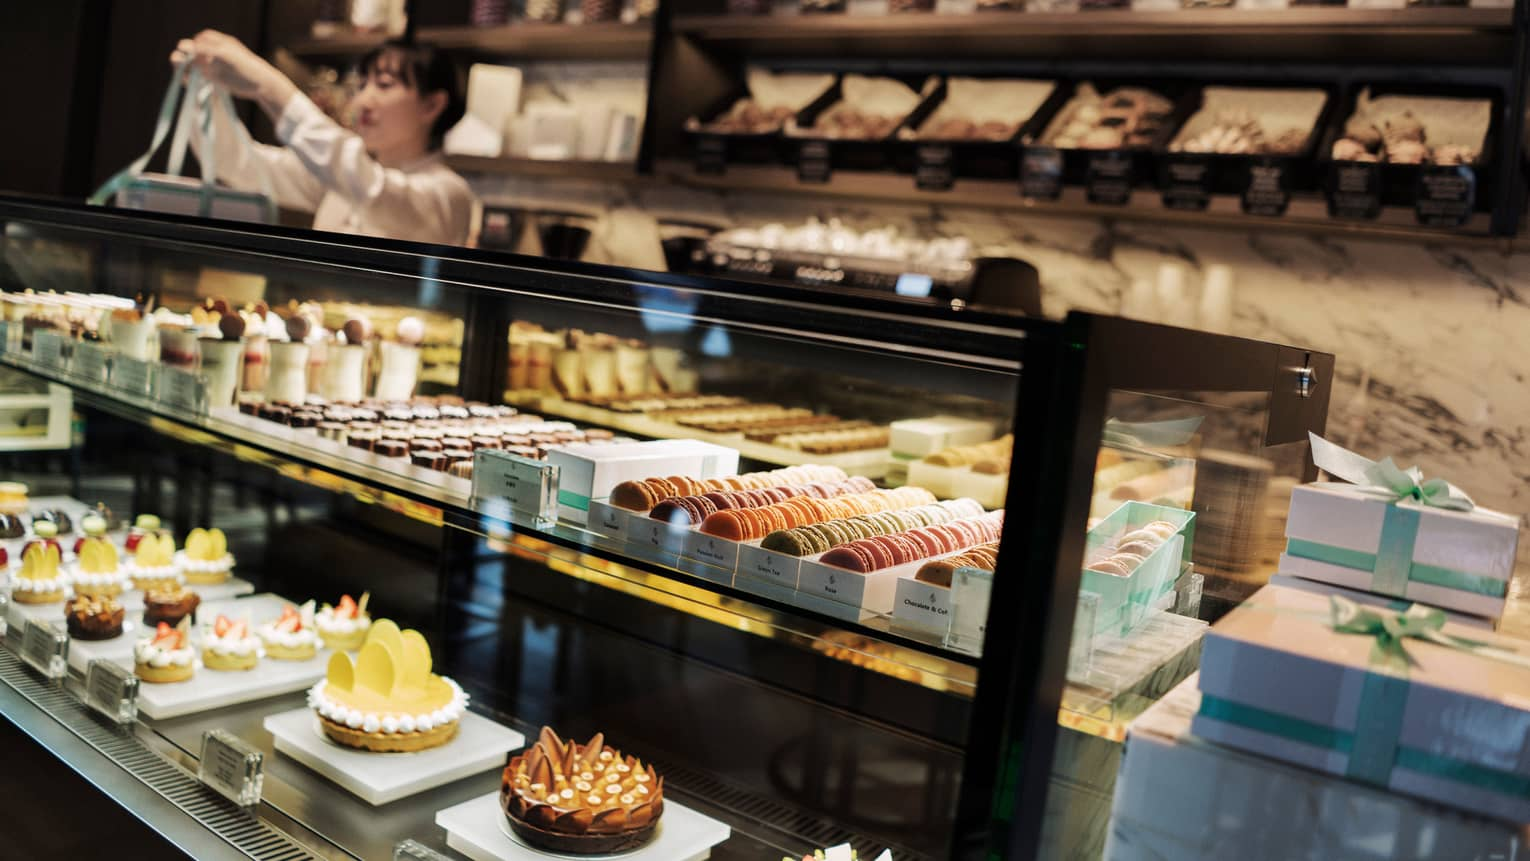 Pastry chef ties bow on box behind large glass counter with pastries, desserts